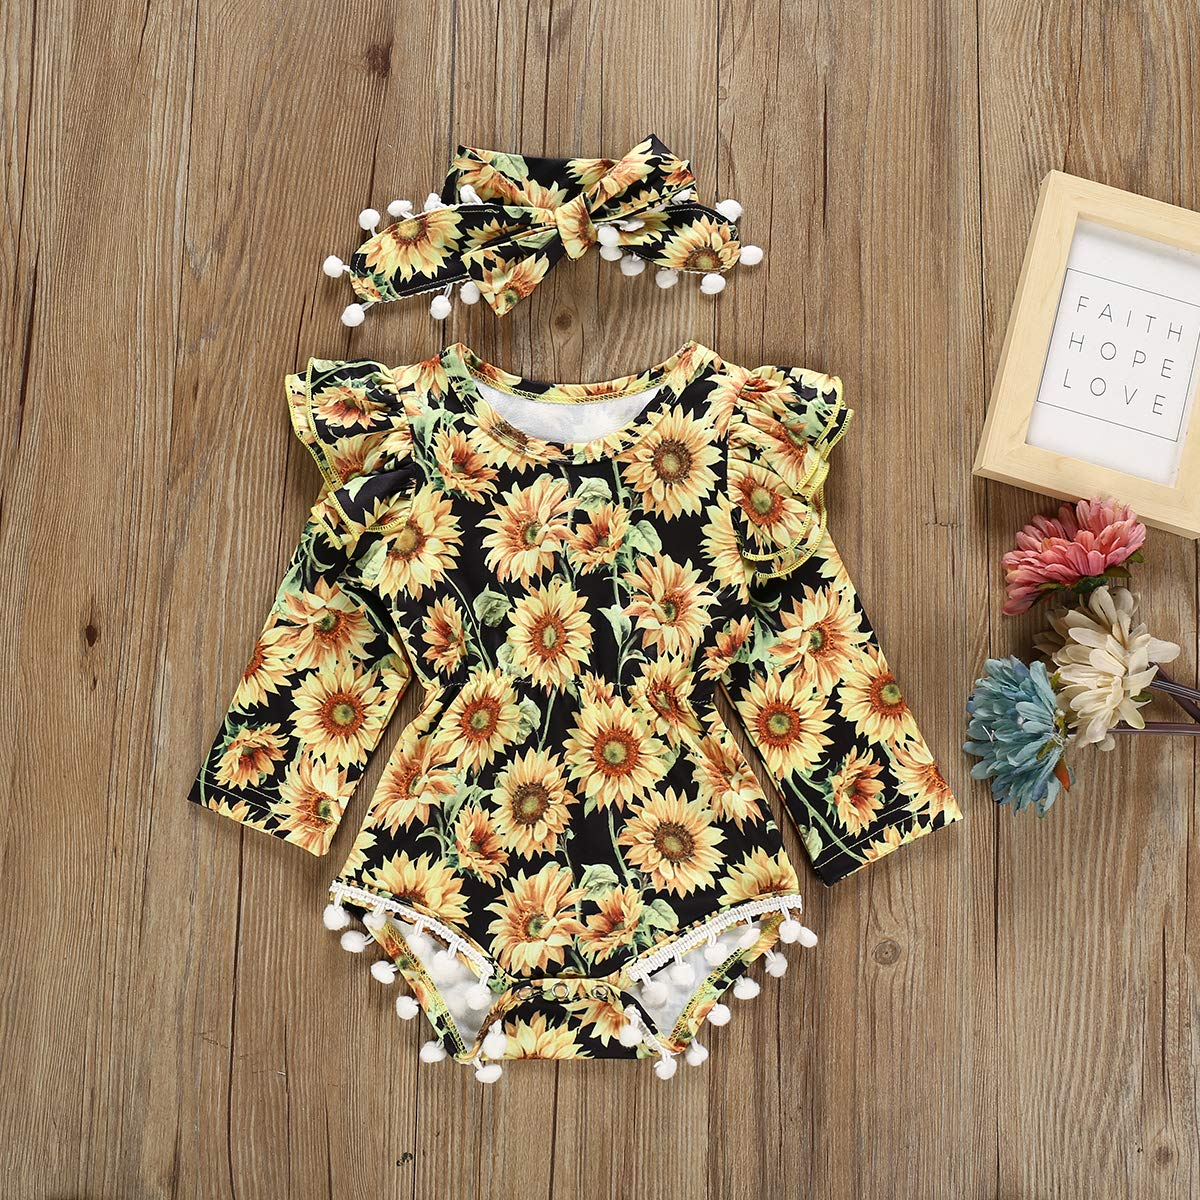 Infant Baby Girls Floral Romper Sunflower Ruffle Tassel Bodysuit Long Sleeve with Headband Clothes